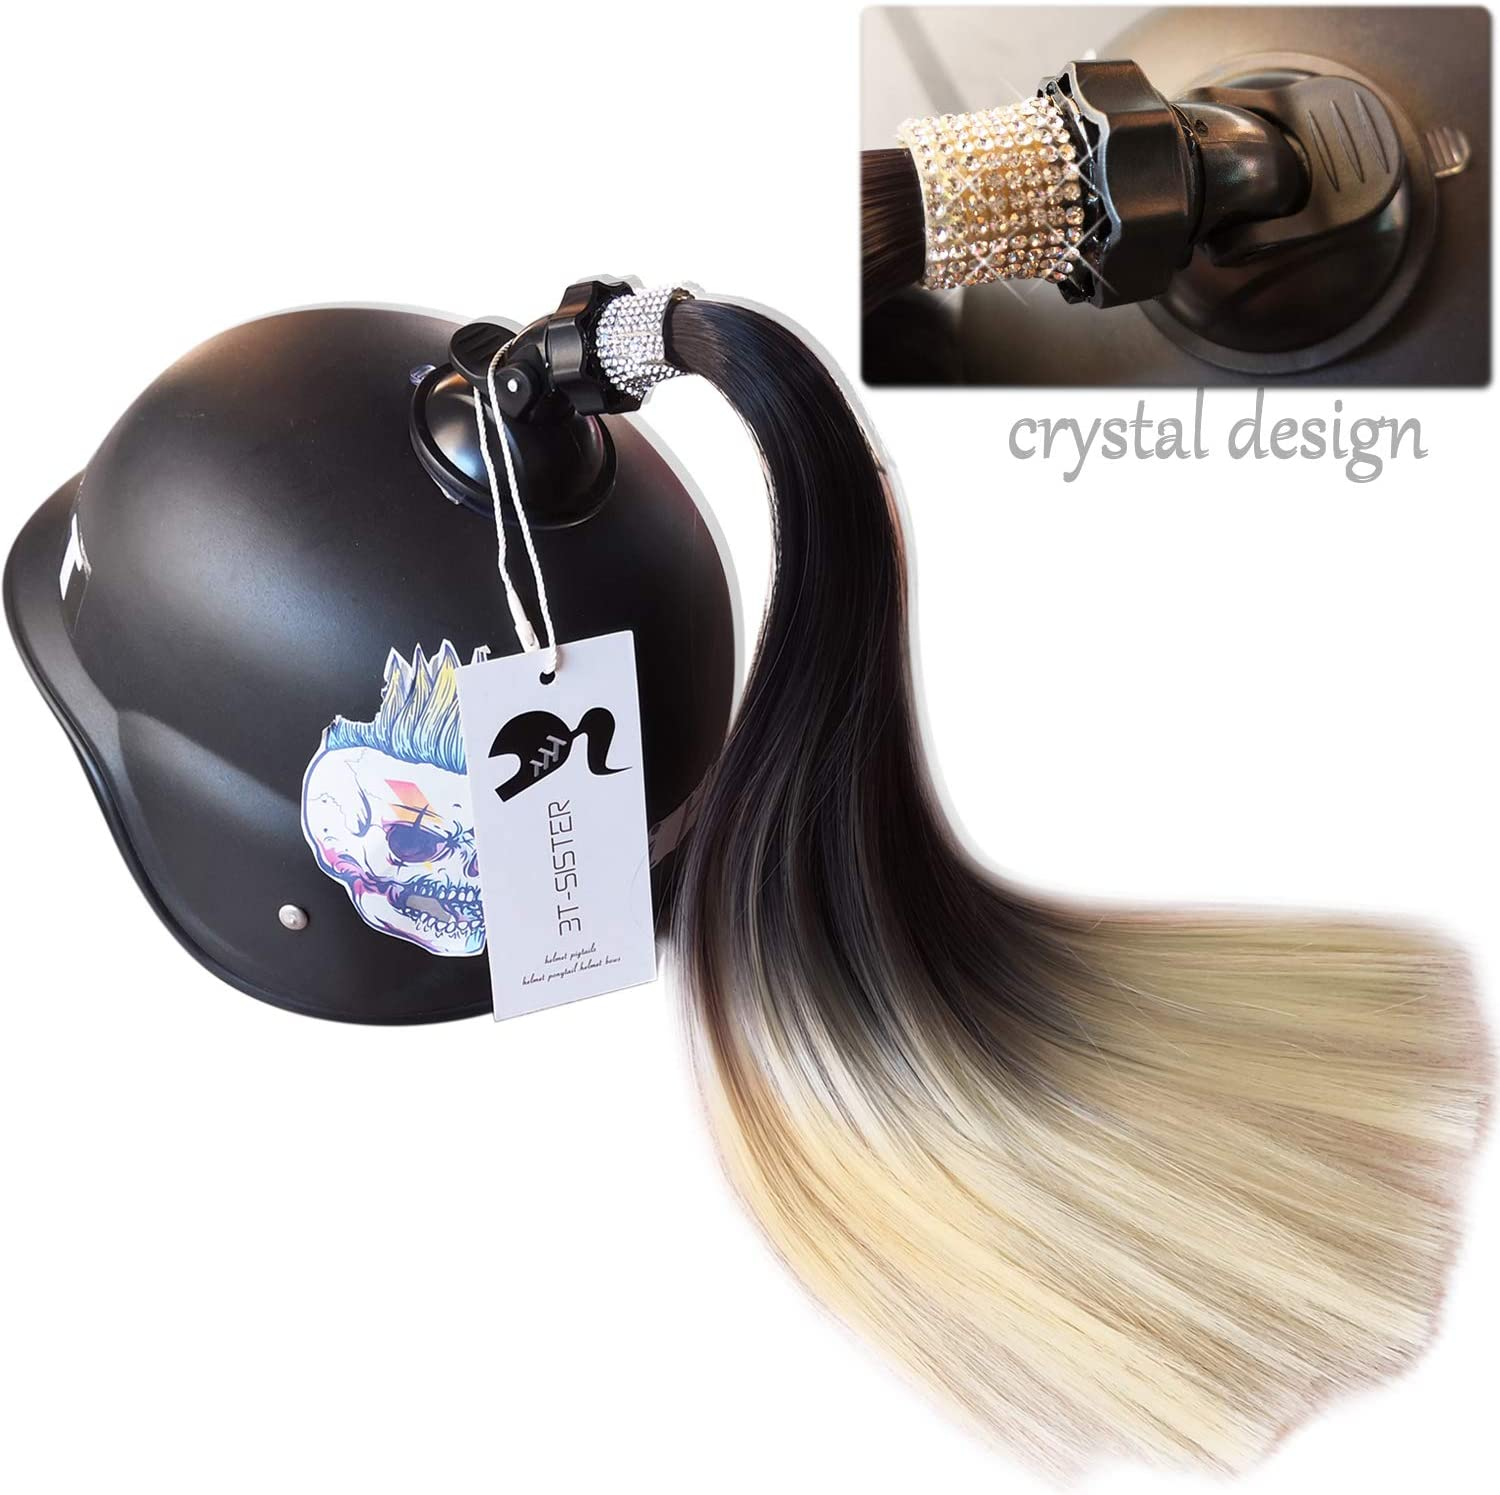 3T-SISTER Crystal Helmet Pigtails 14inch Helmet Ponytail Decoration for Motorcycle Bicycle Ski Helmet Accessories Reusable Suction Cup Rhinestone Design